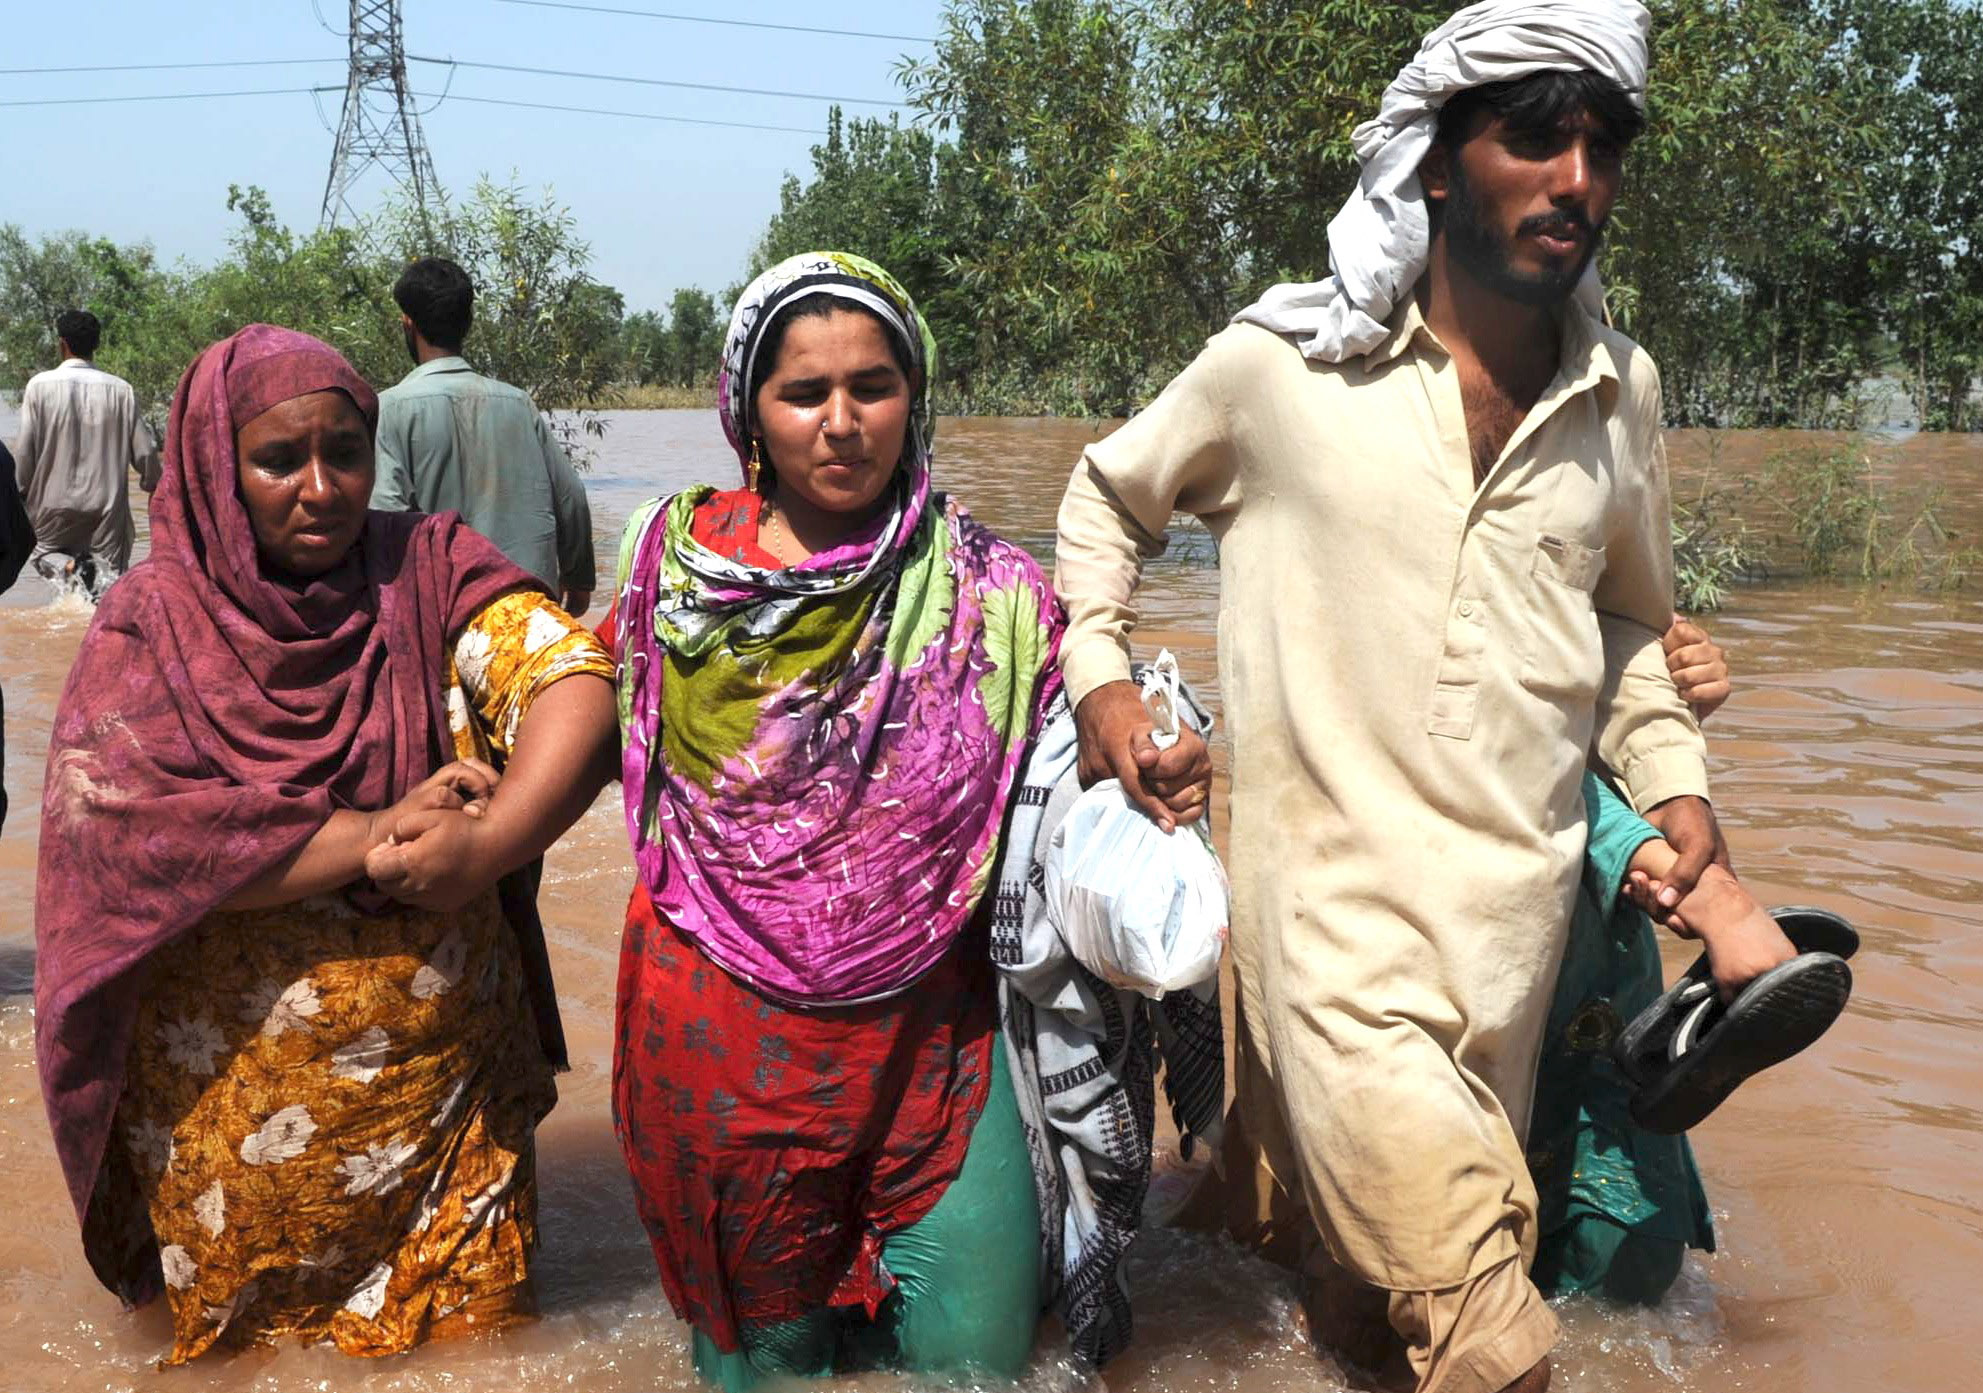 Women have faced huge difficulties in rebuilding lives after returning to flood hit areas in Pakistan